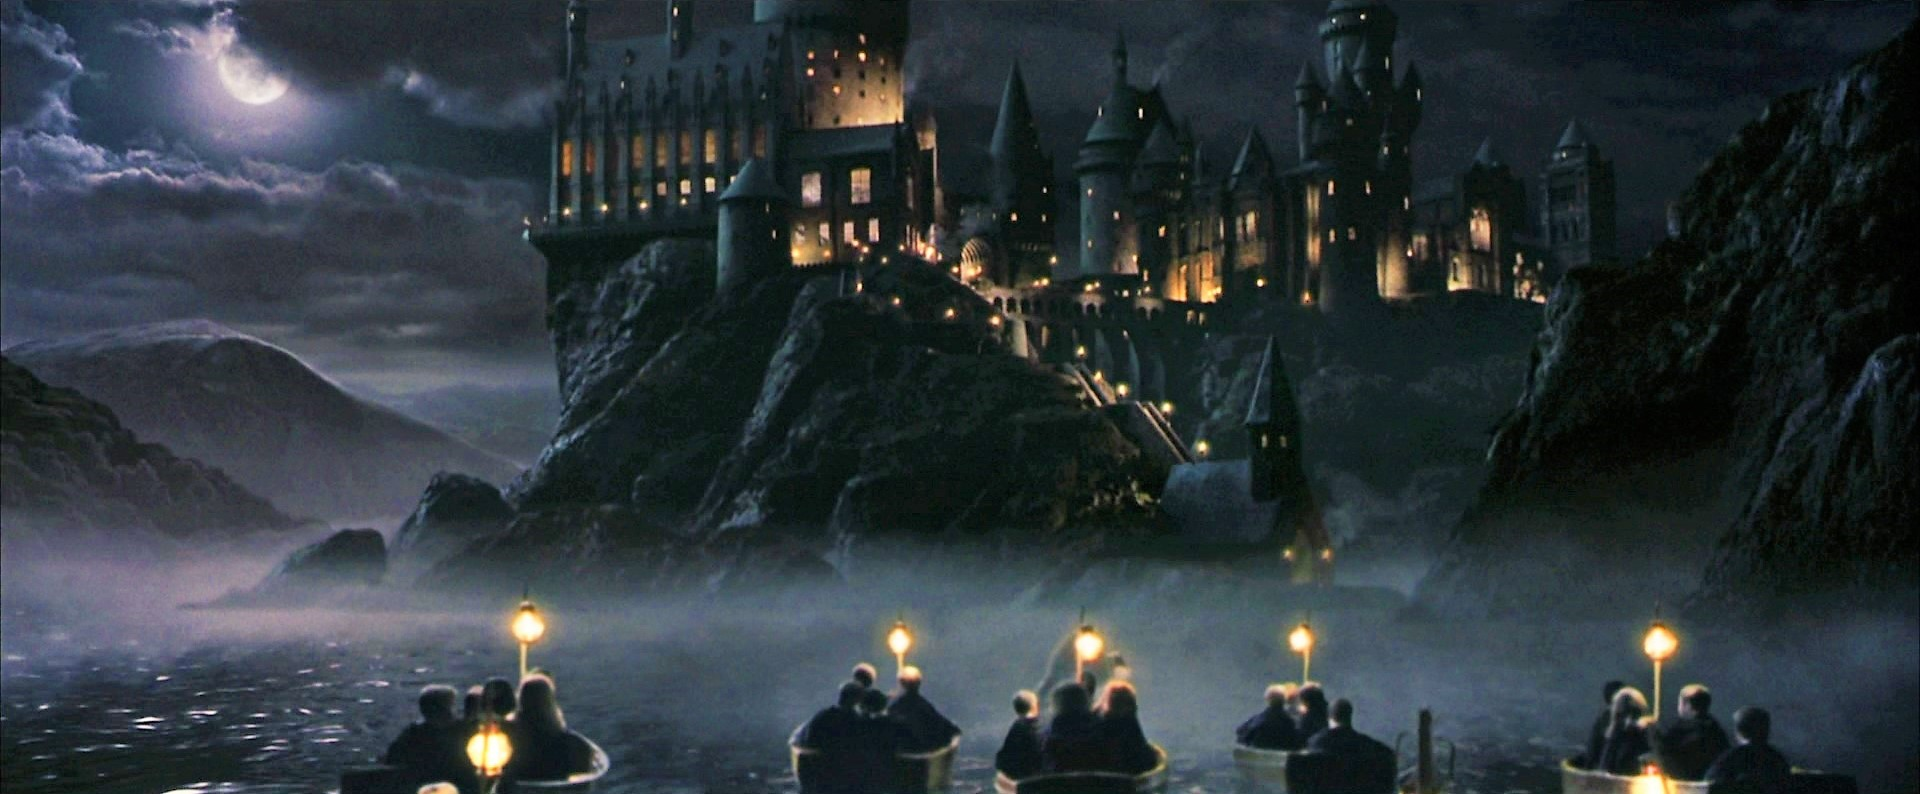 Hogwarts boats | Harry Potter Wiki | Fandom powered by Wikia